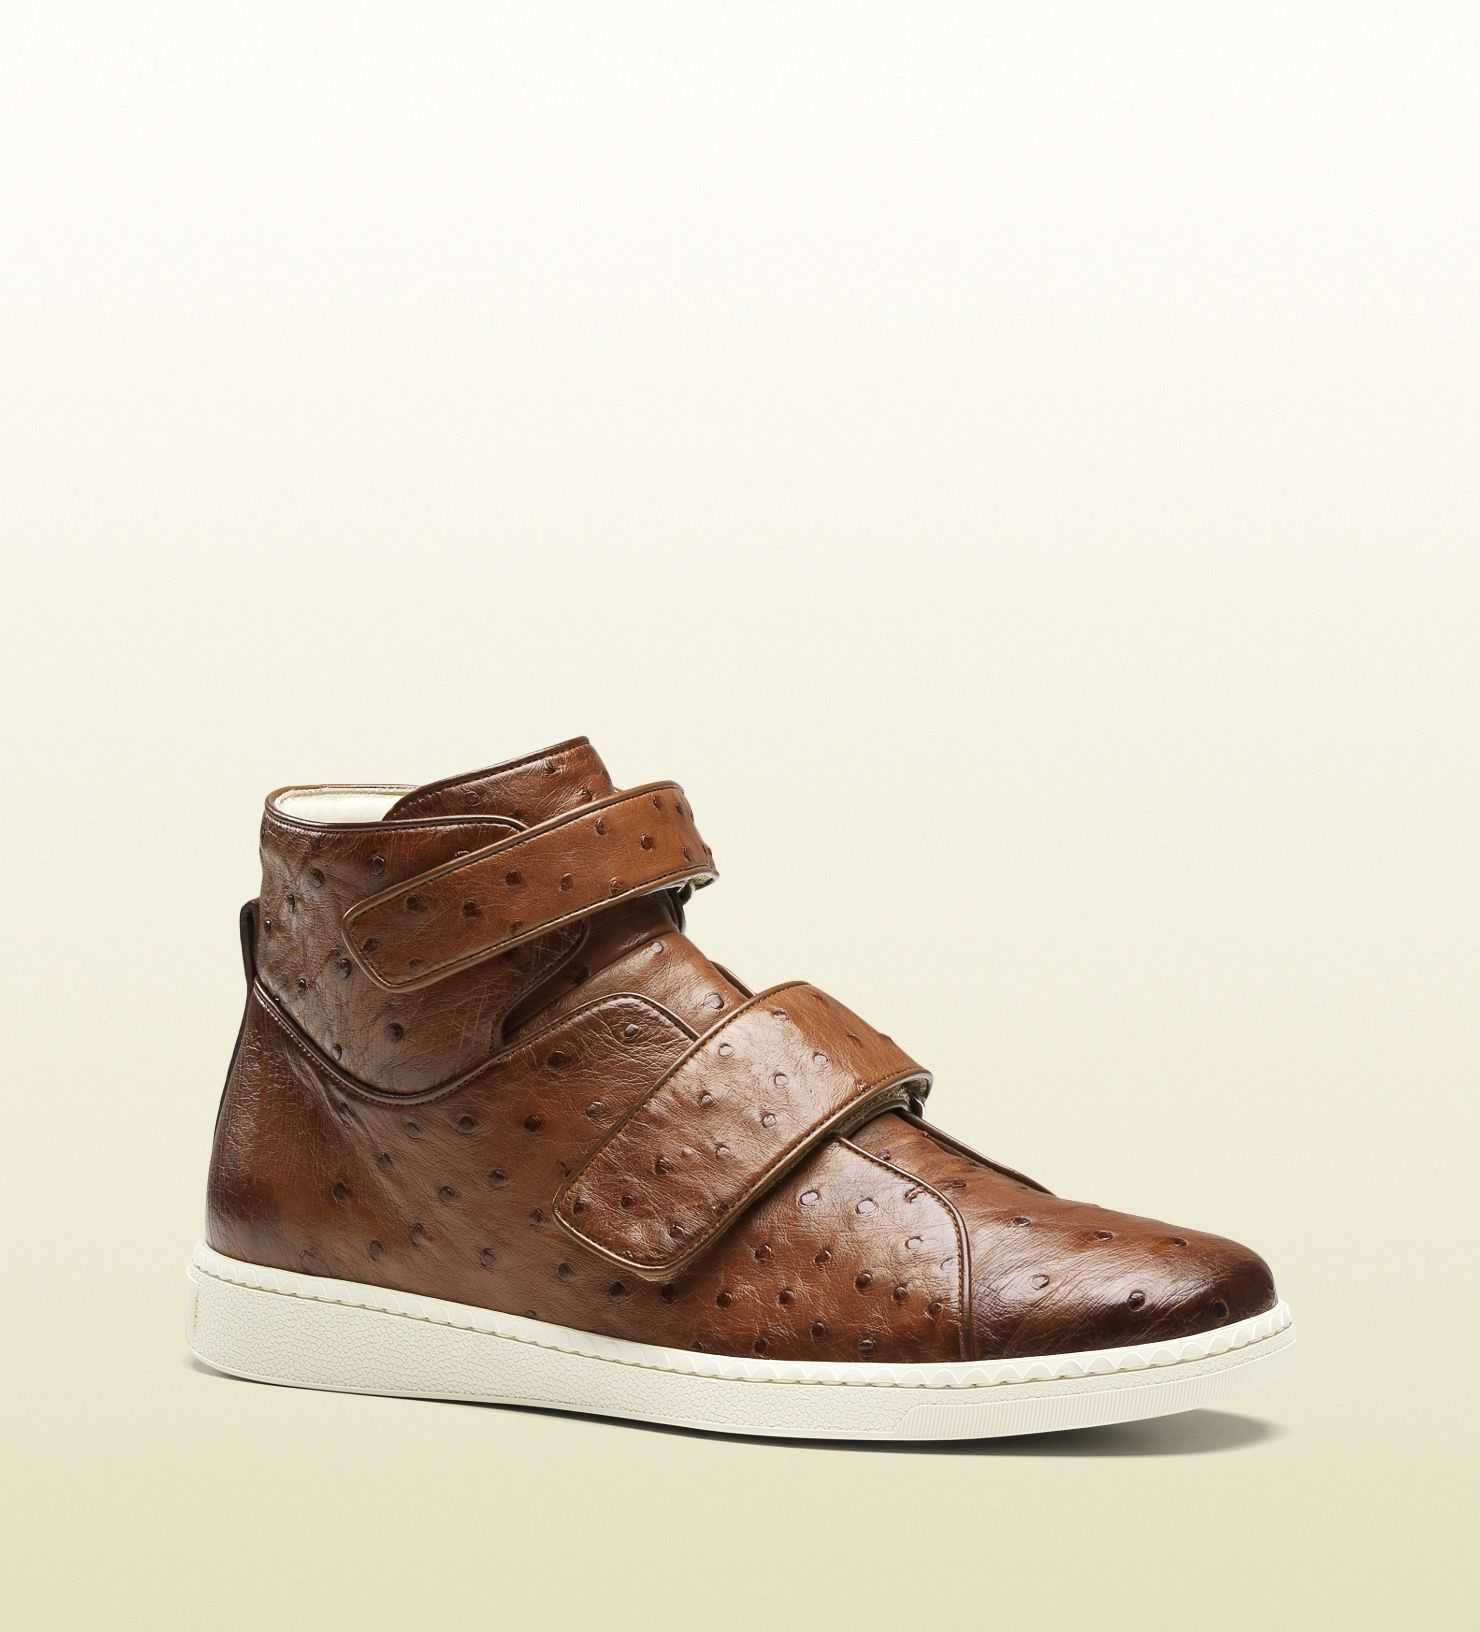 75079ad98615 Gucci cuir ostrich high-top sneaker with velcro closure   Men Shoes ...